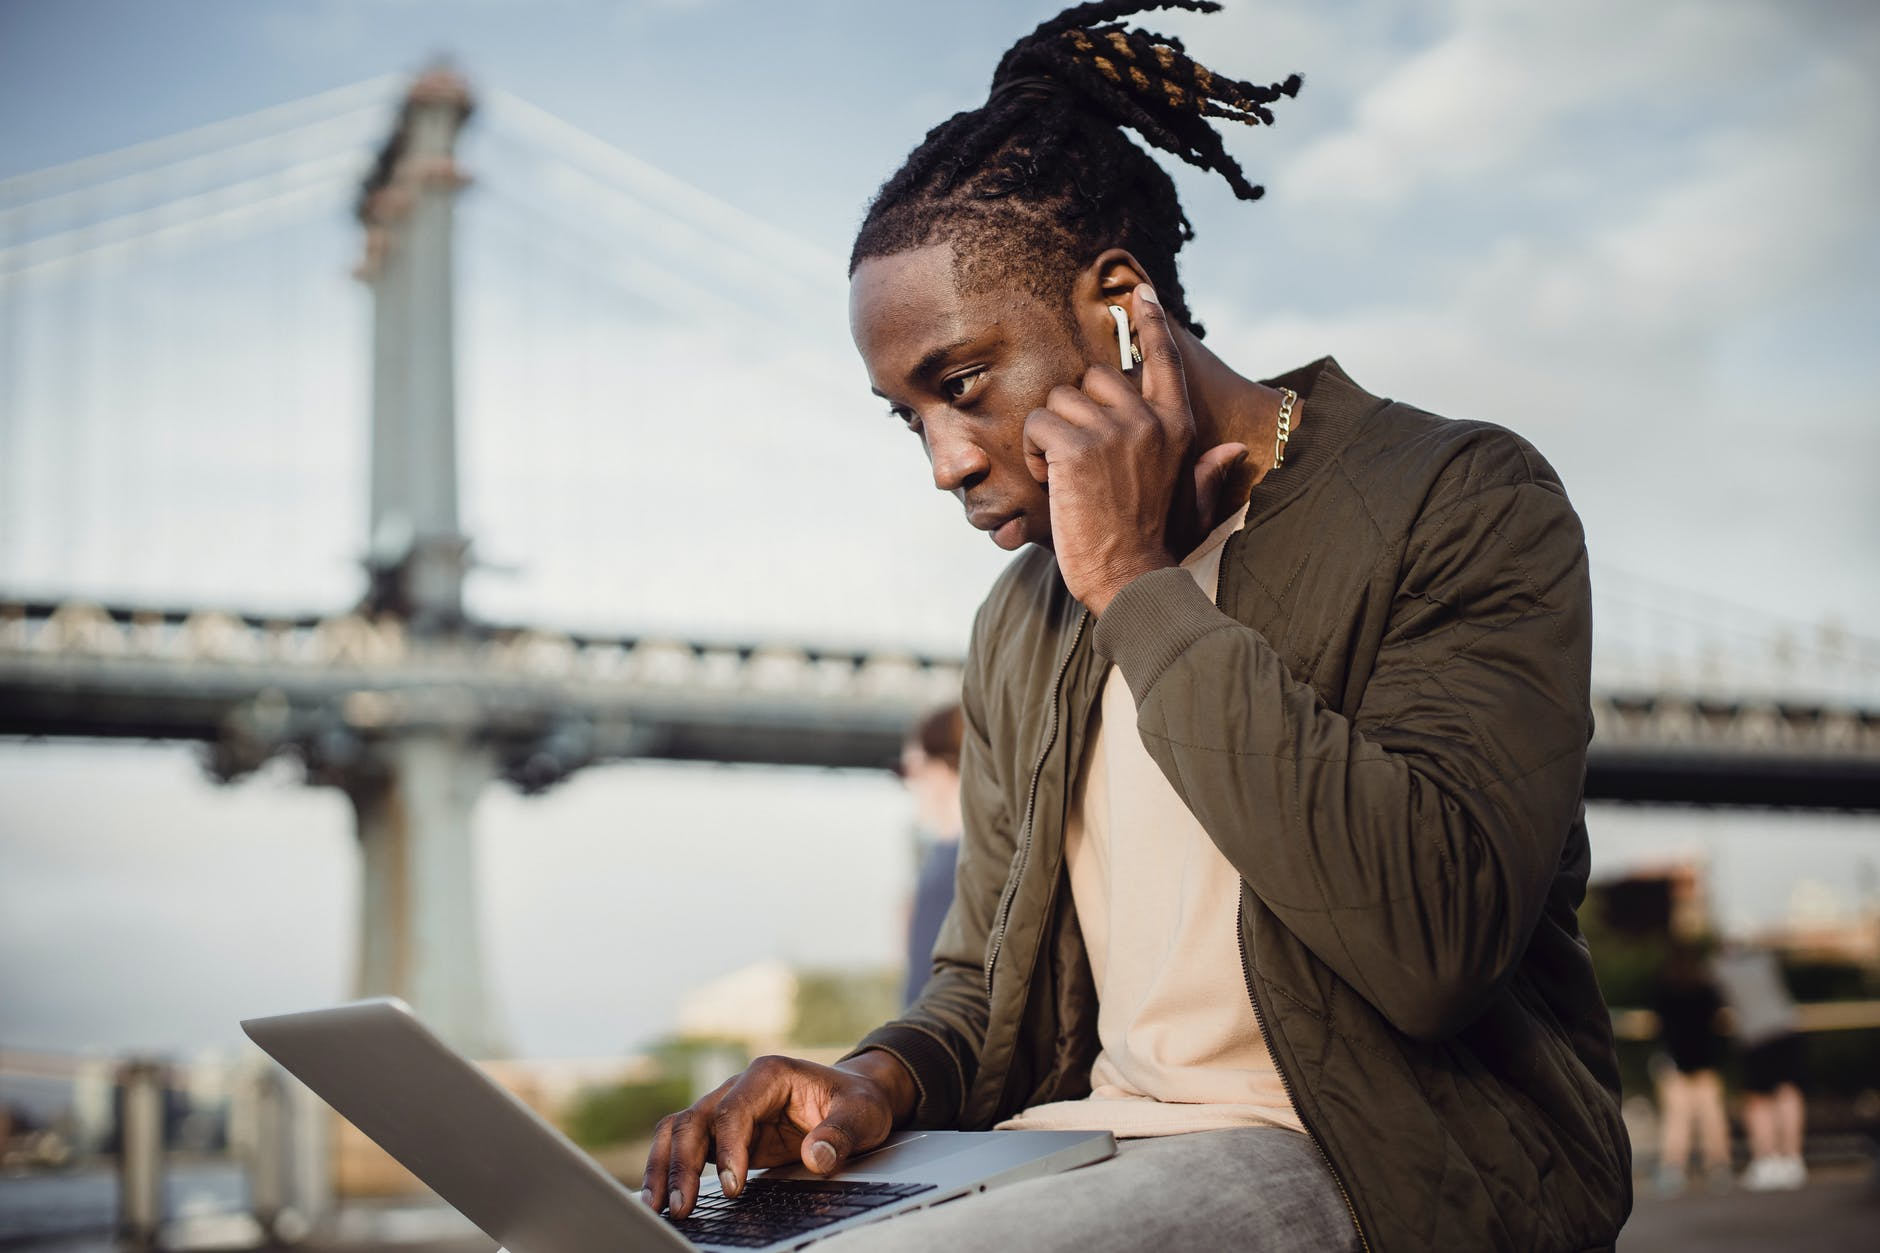 serious black man working on project on laptop